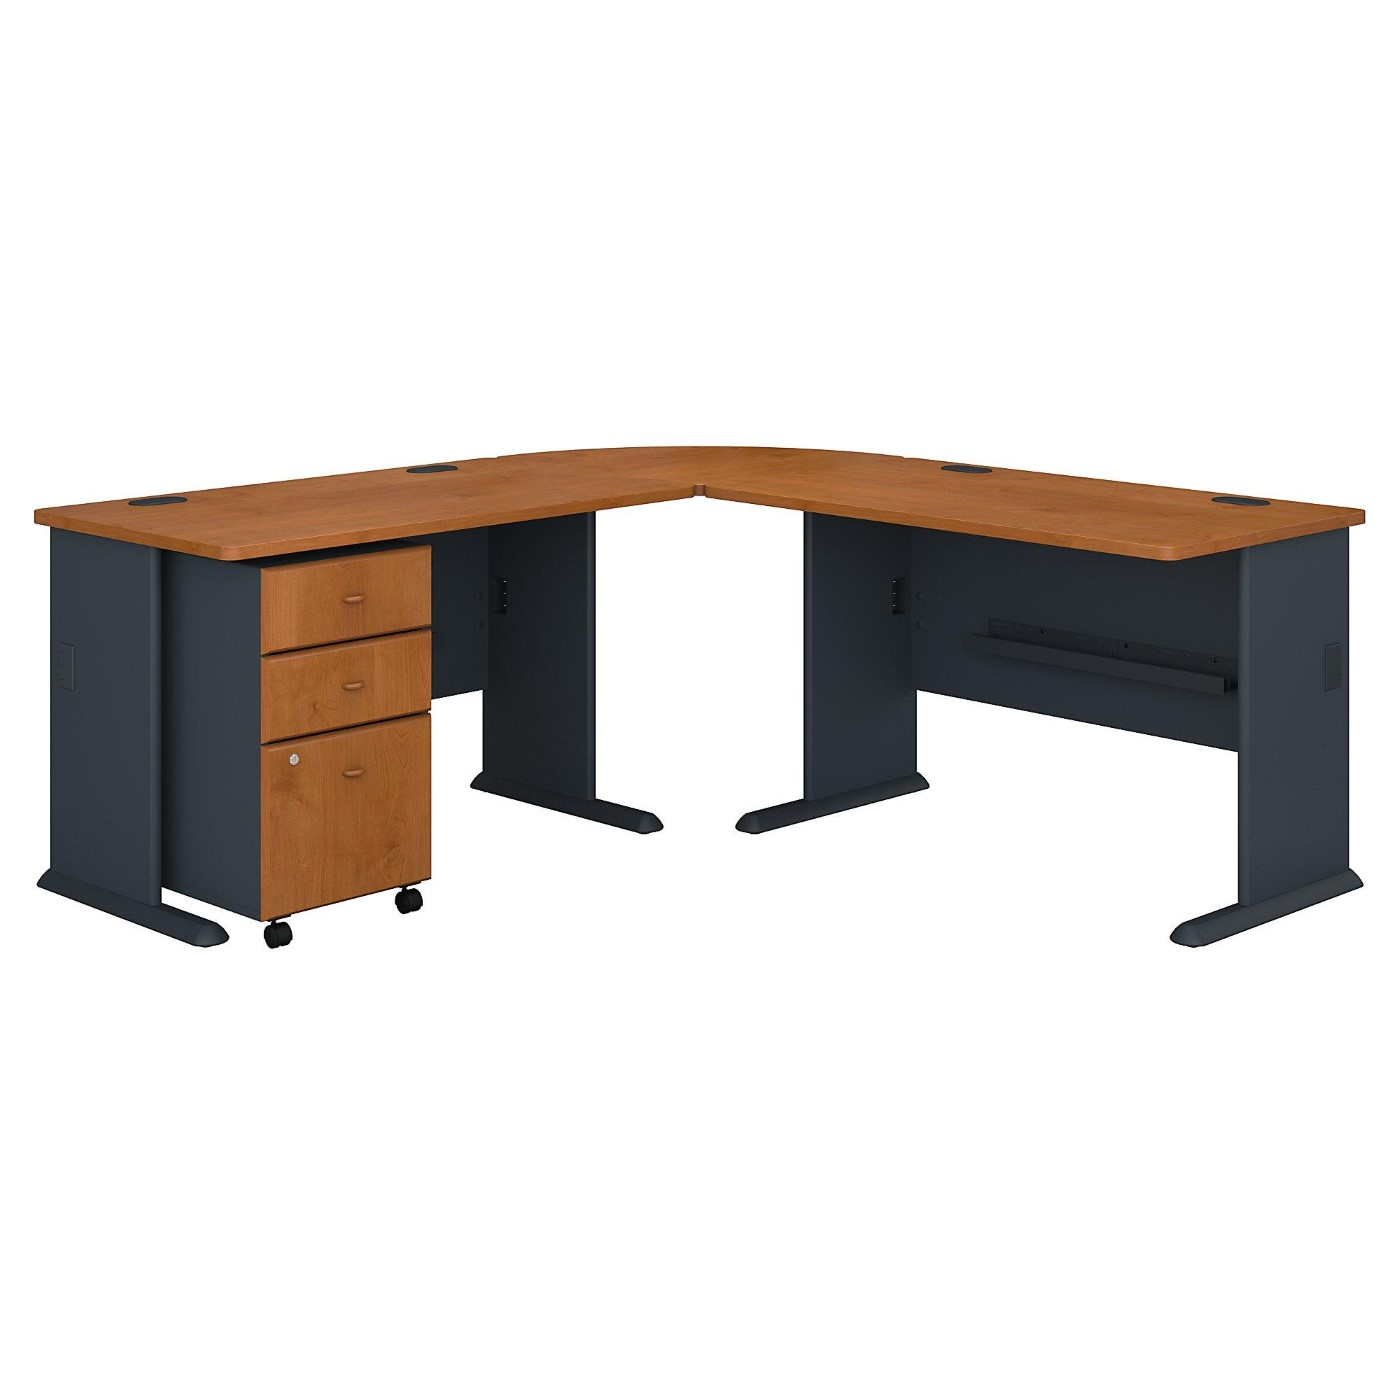 BUSH BUSINESS FURNITURE SERIES A 75W X 75D L SHAPED DESK WITH MOBILE FILE CABINET. FREE SHIPPING.  SALE DEDUCT 10% MORE ENTER '10percent' IN COUPON CODE BOX WHILE CHECKING OUT.